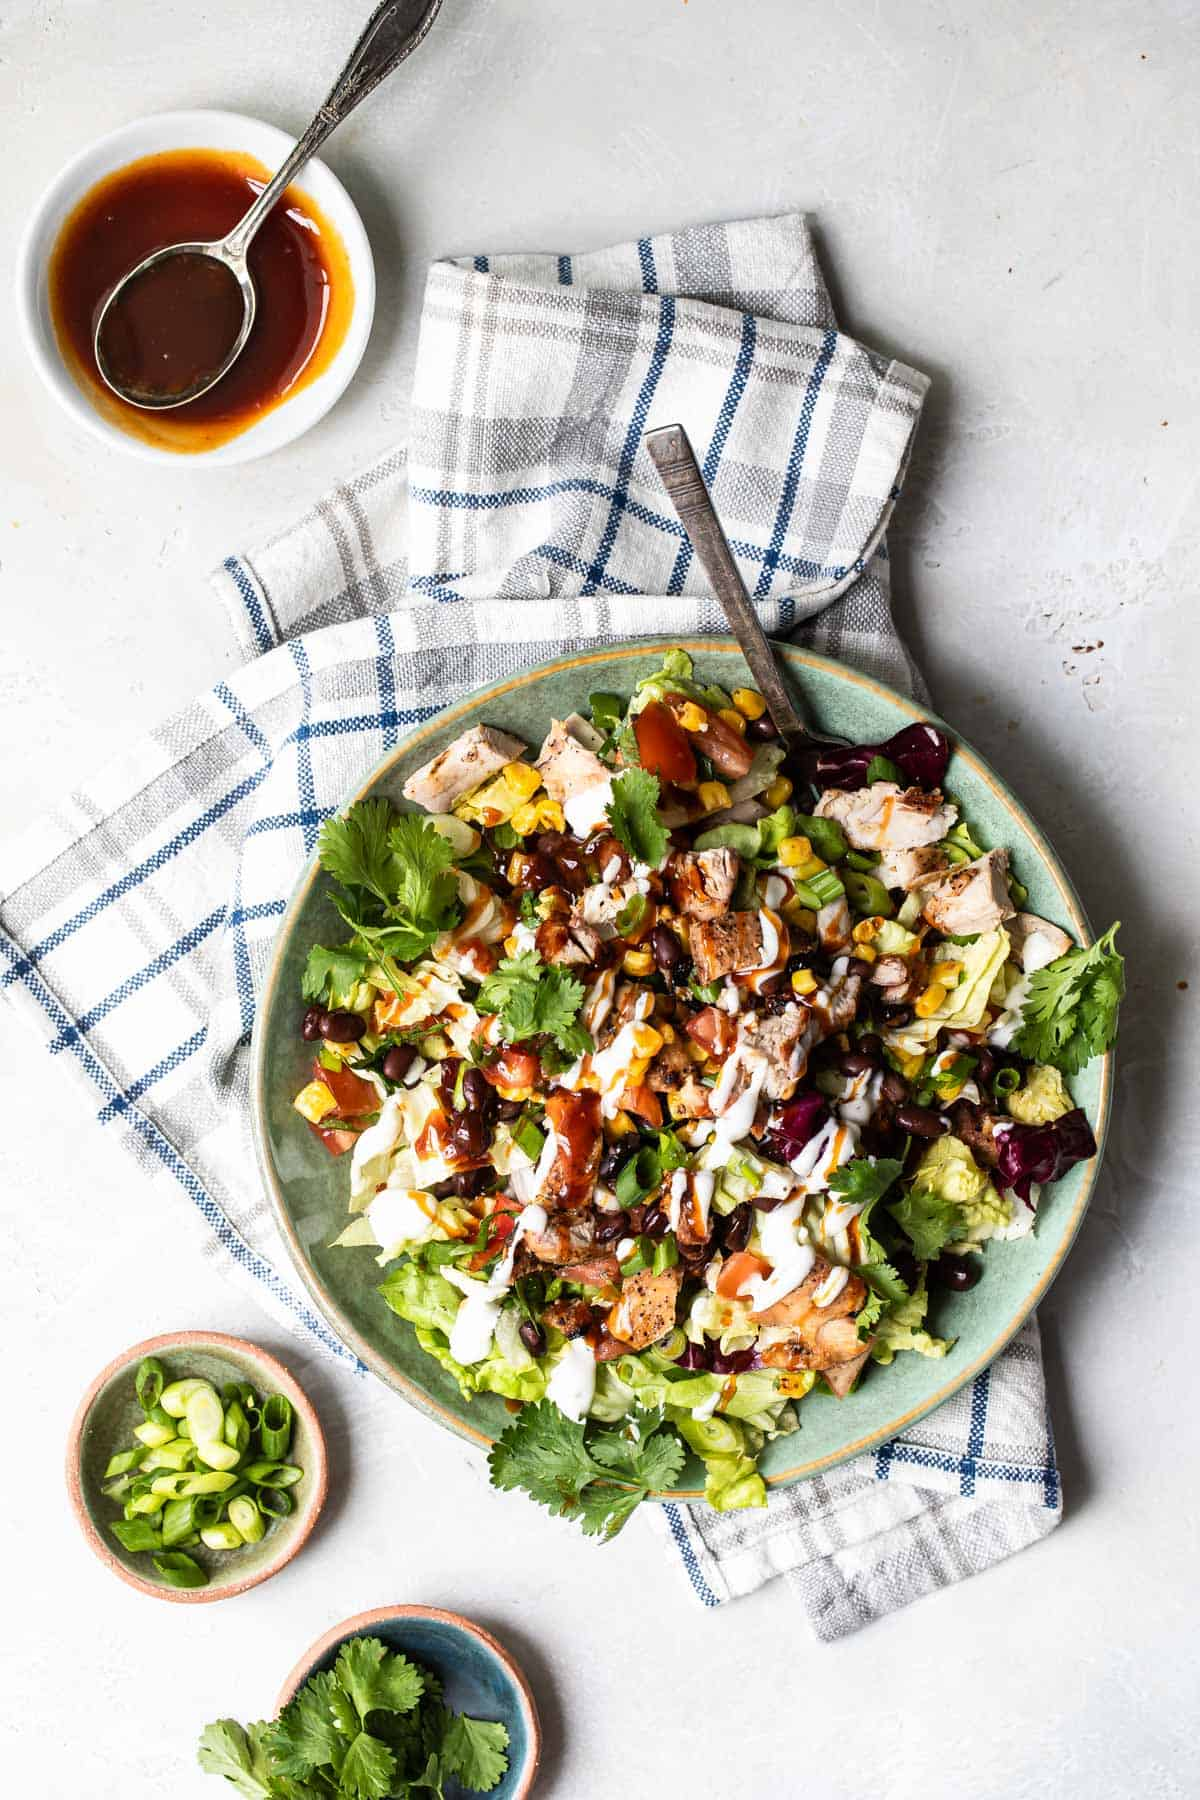 bbq grilled chicken chopped salad with bbq sauce and cilantro on the side